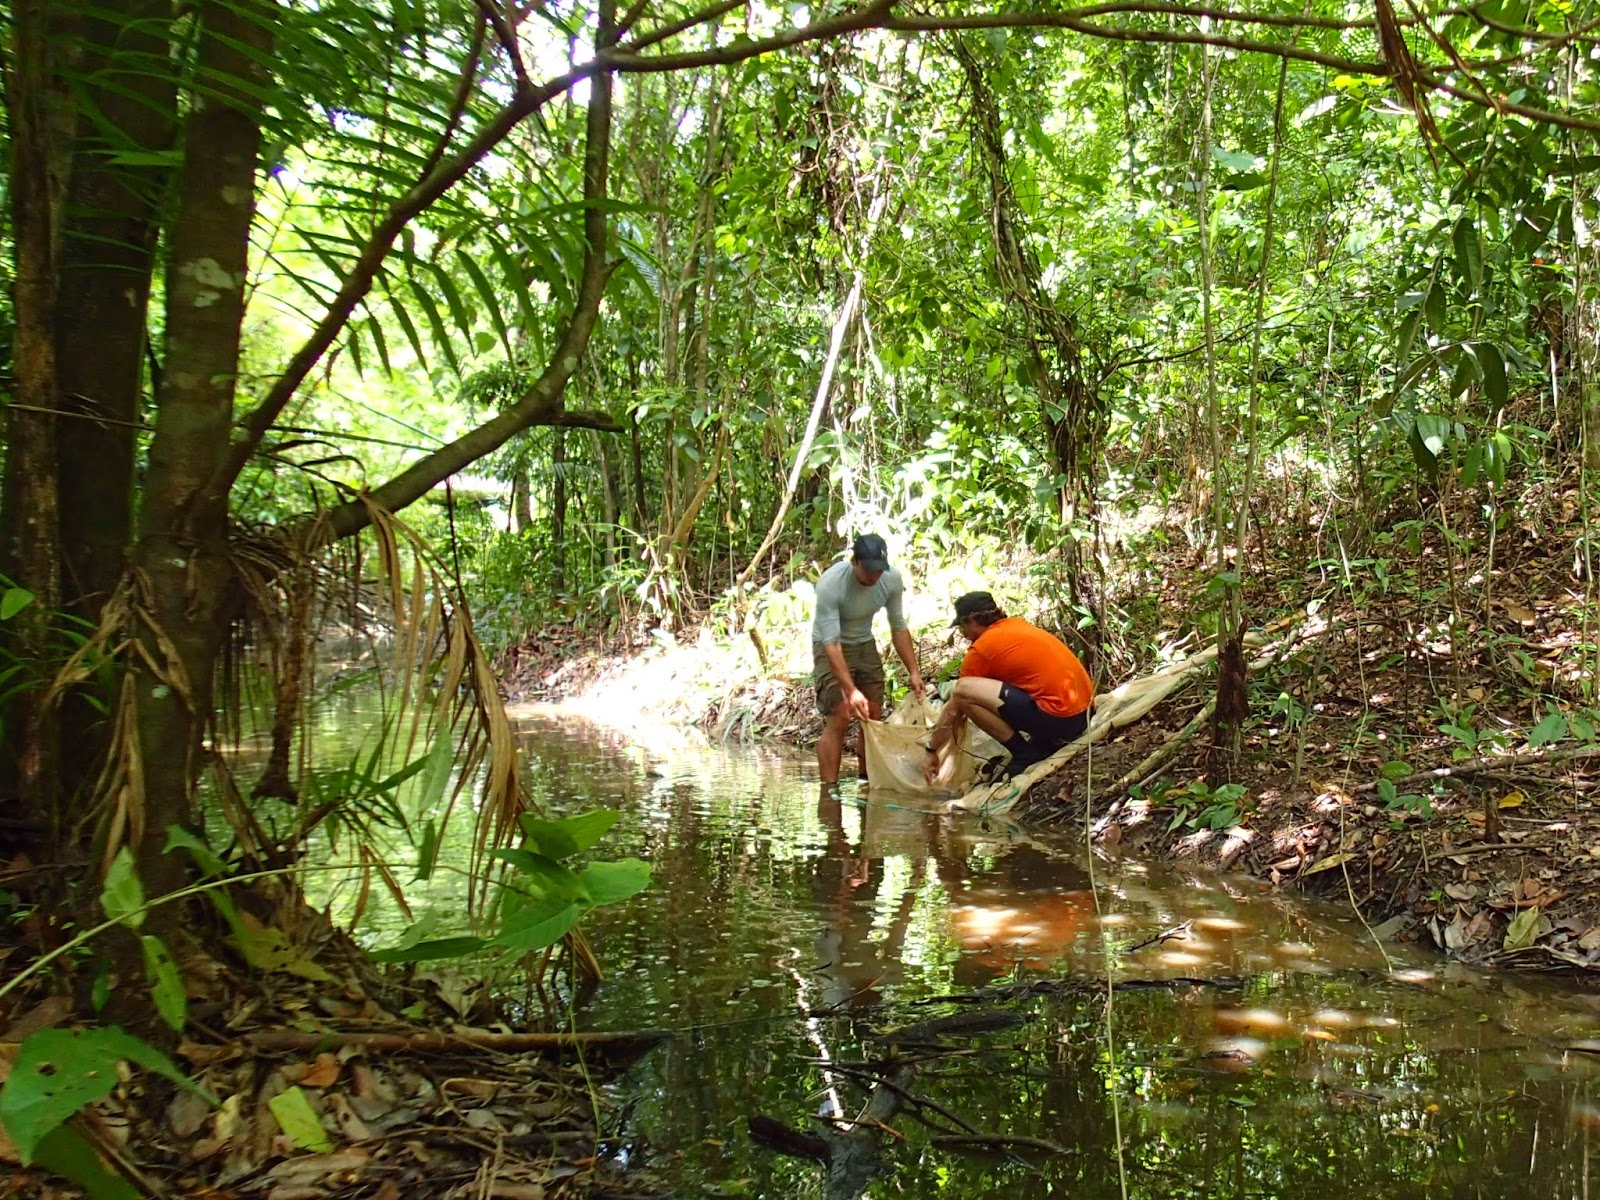 Researchers fishing in streams of Trinidad & Tobago (photo by Fernando)